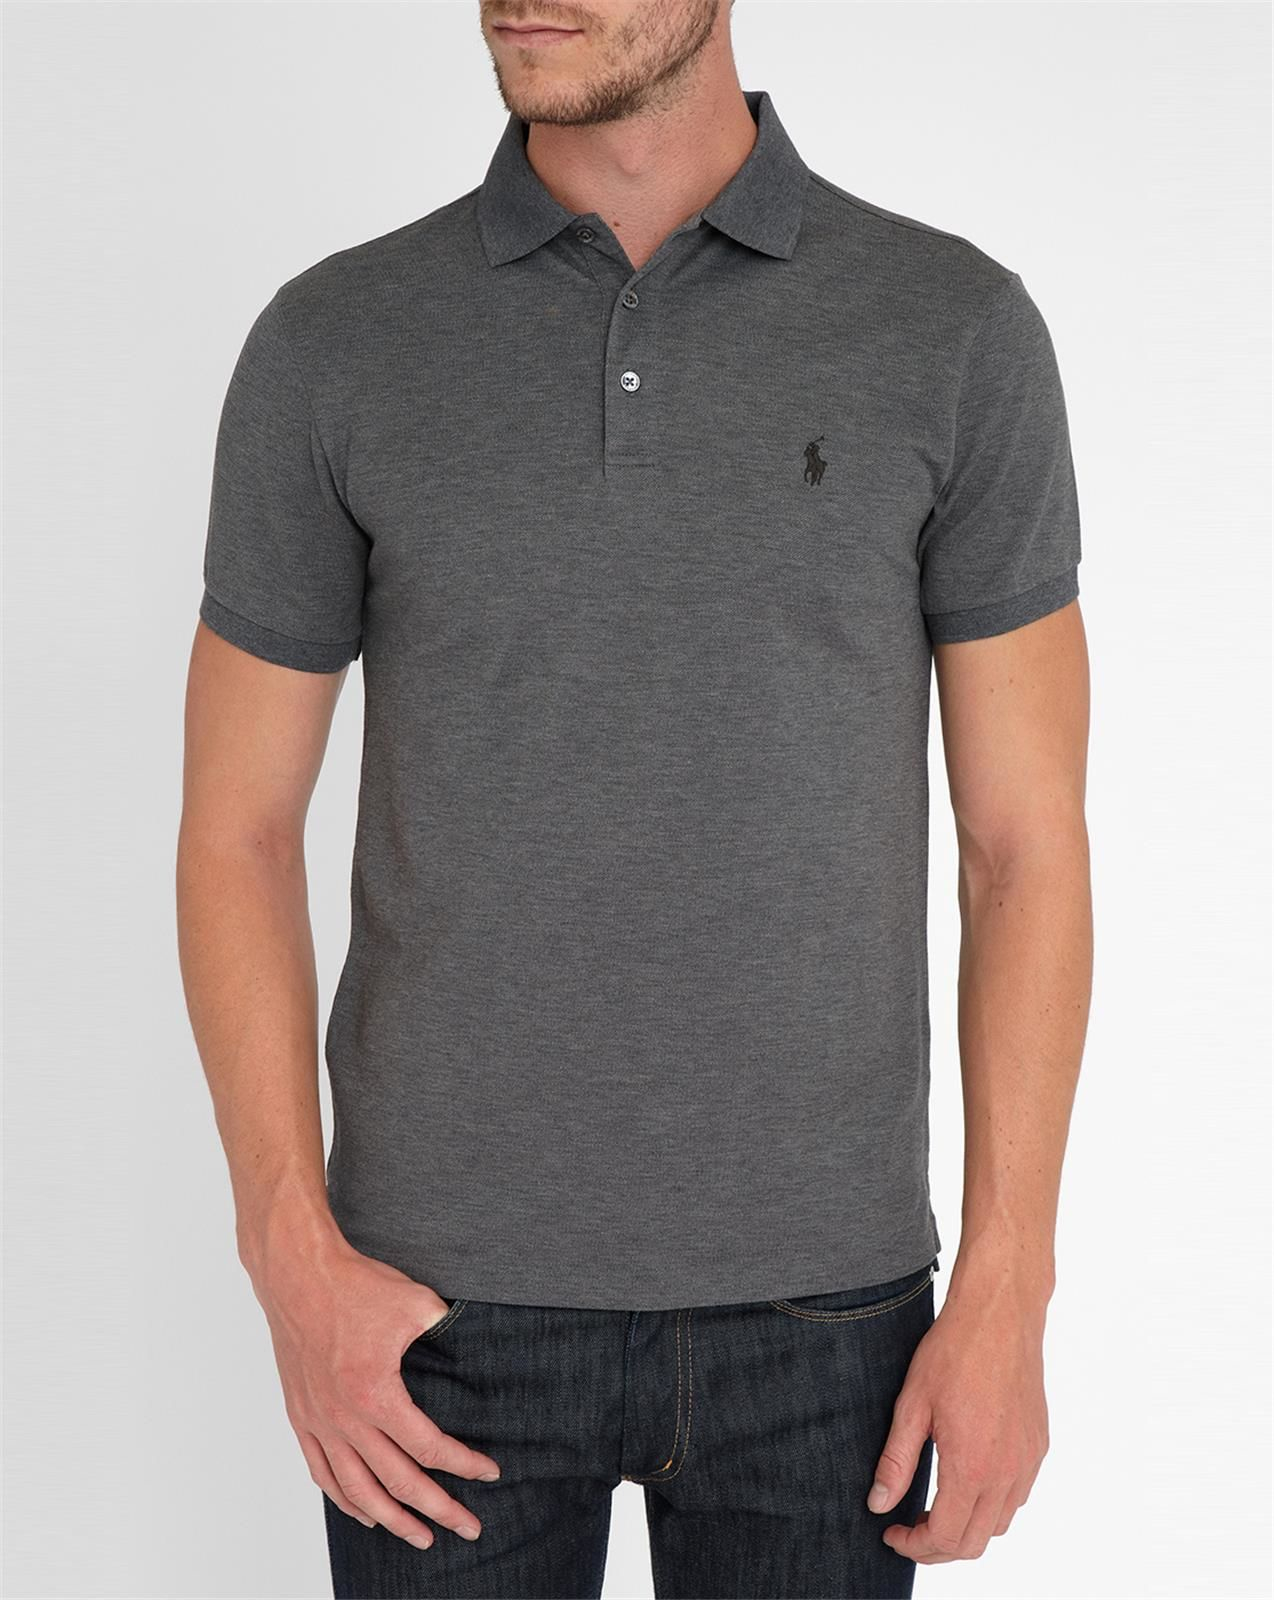 polo ralph lauren charcoal stretch slim fit polo shirt in gray for men grey lyst. Black Bedroom Furniture Sets. Home Design Ideas